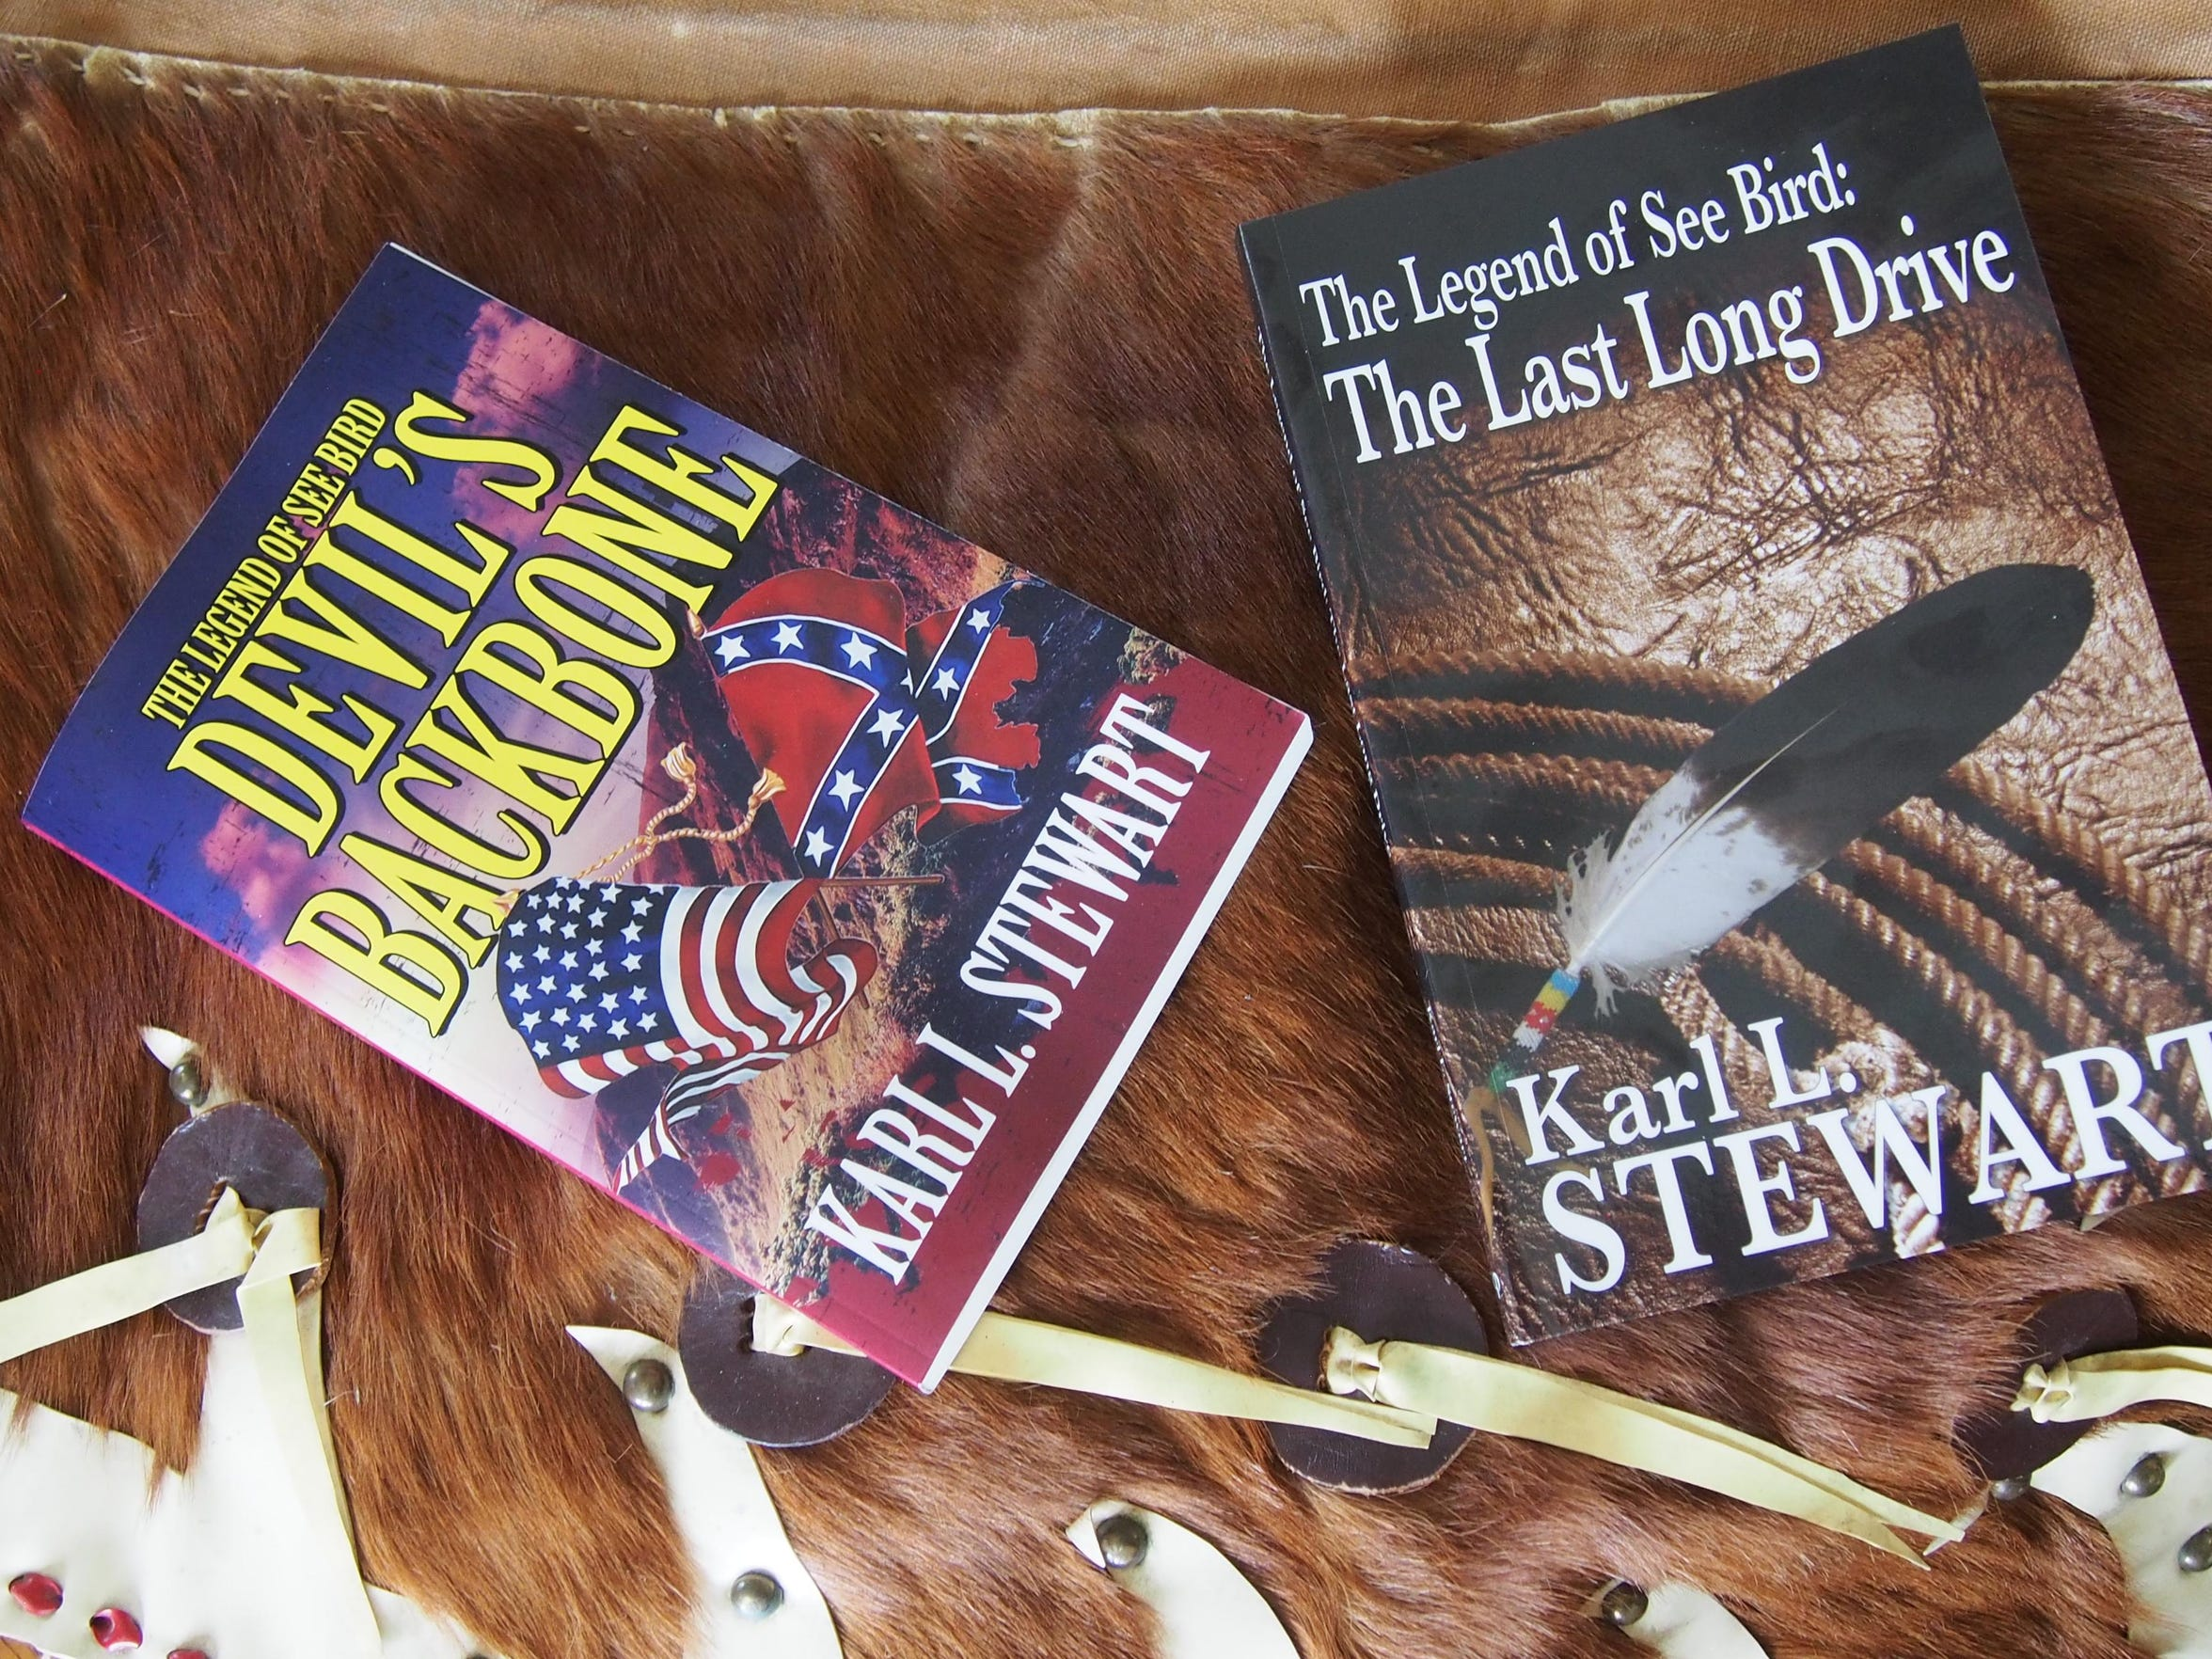 Karl Stewart's two books lay across a pair of adult